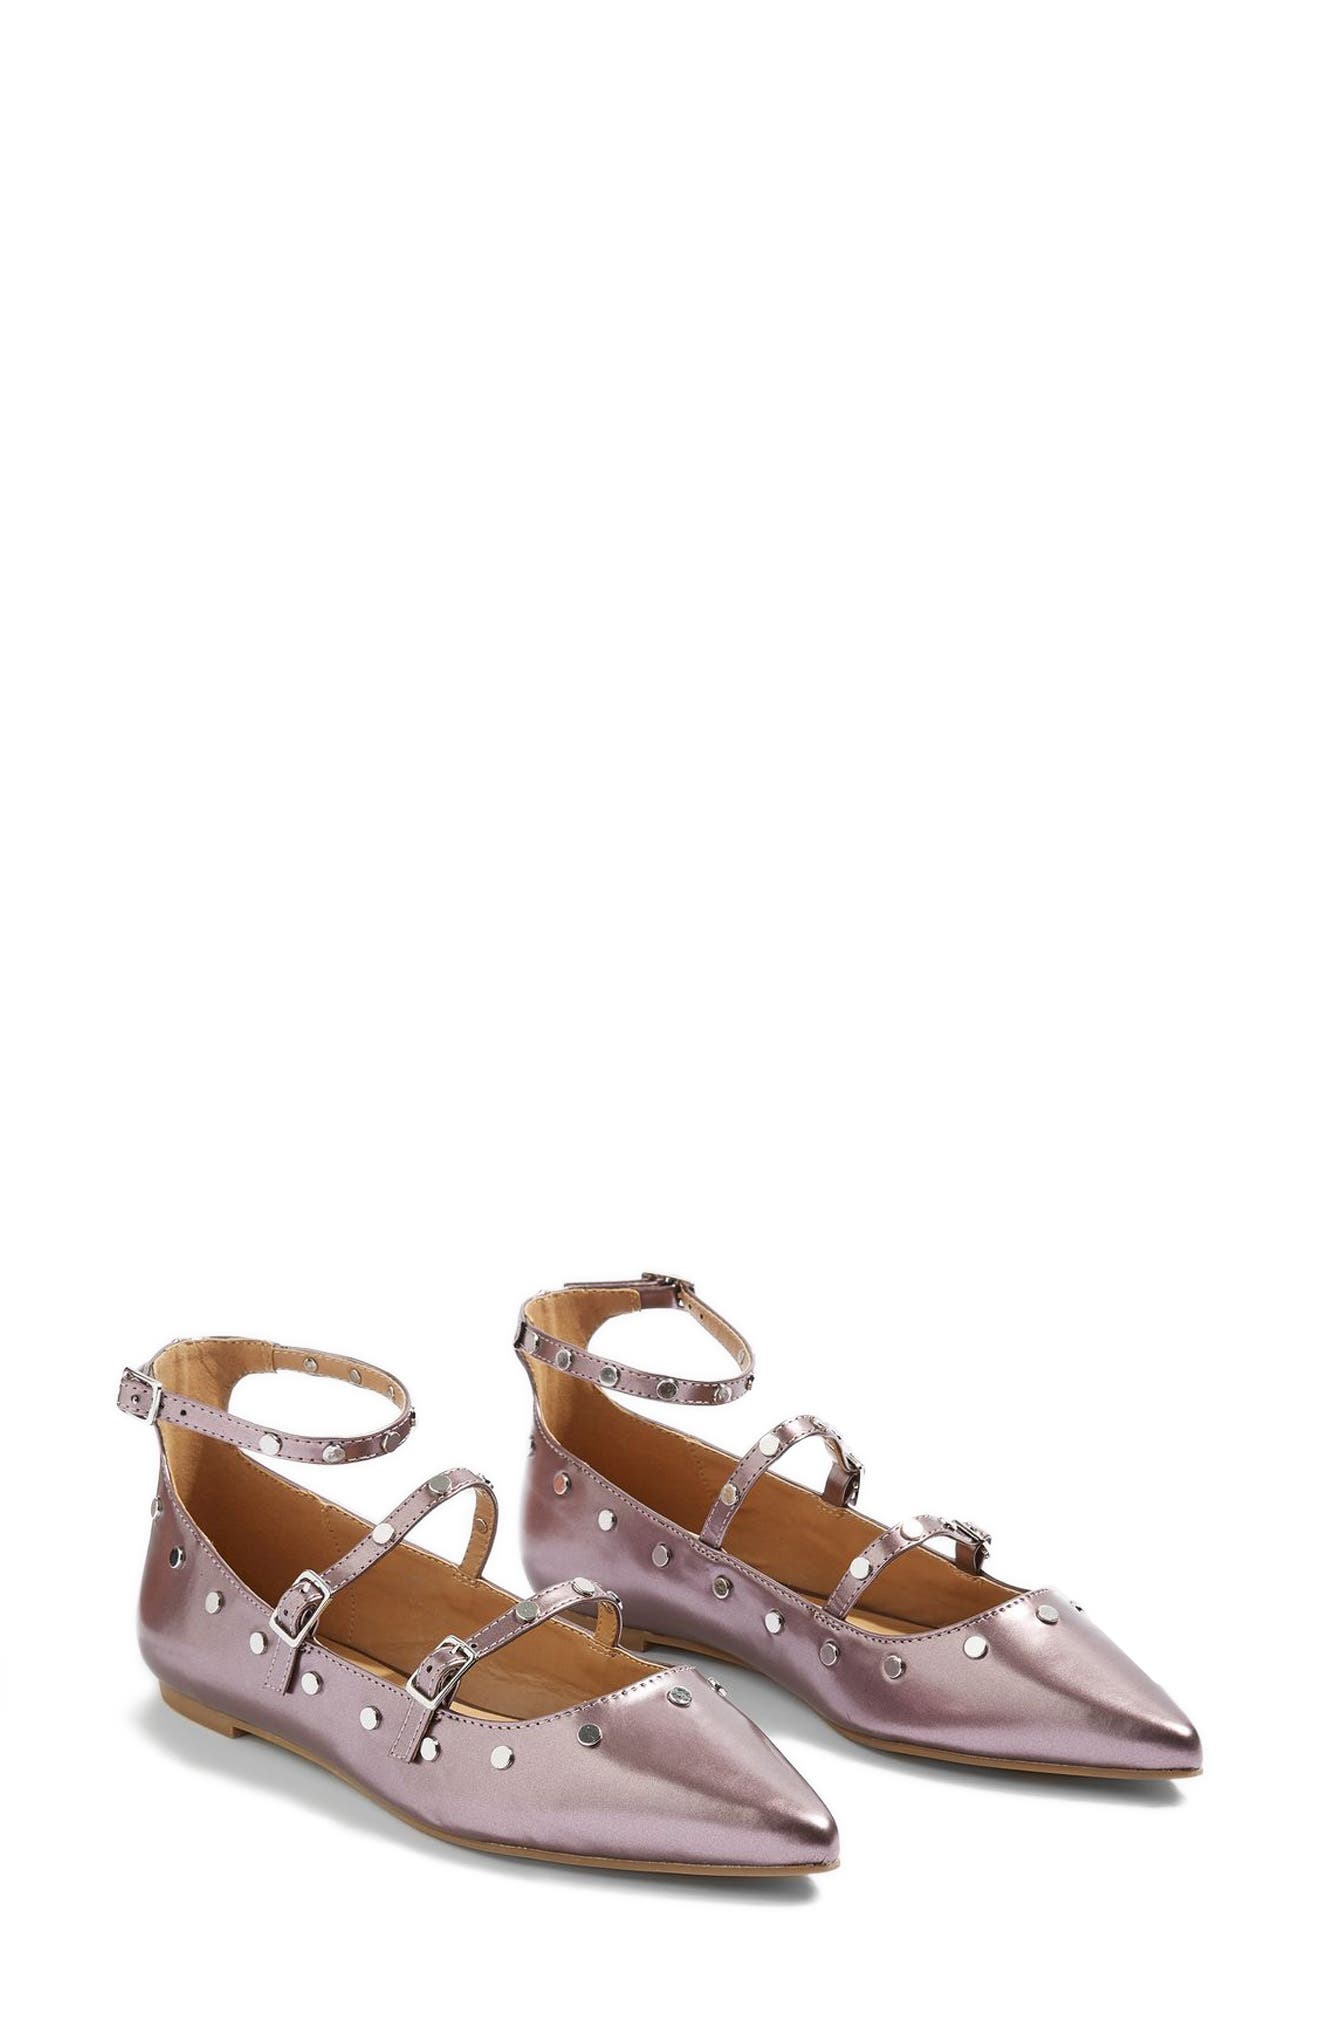 Alternate Image 1 Selected - Topshop Arabelle Studded Ankle Wrap Flat (Women)